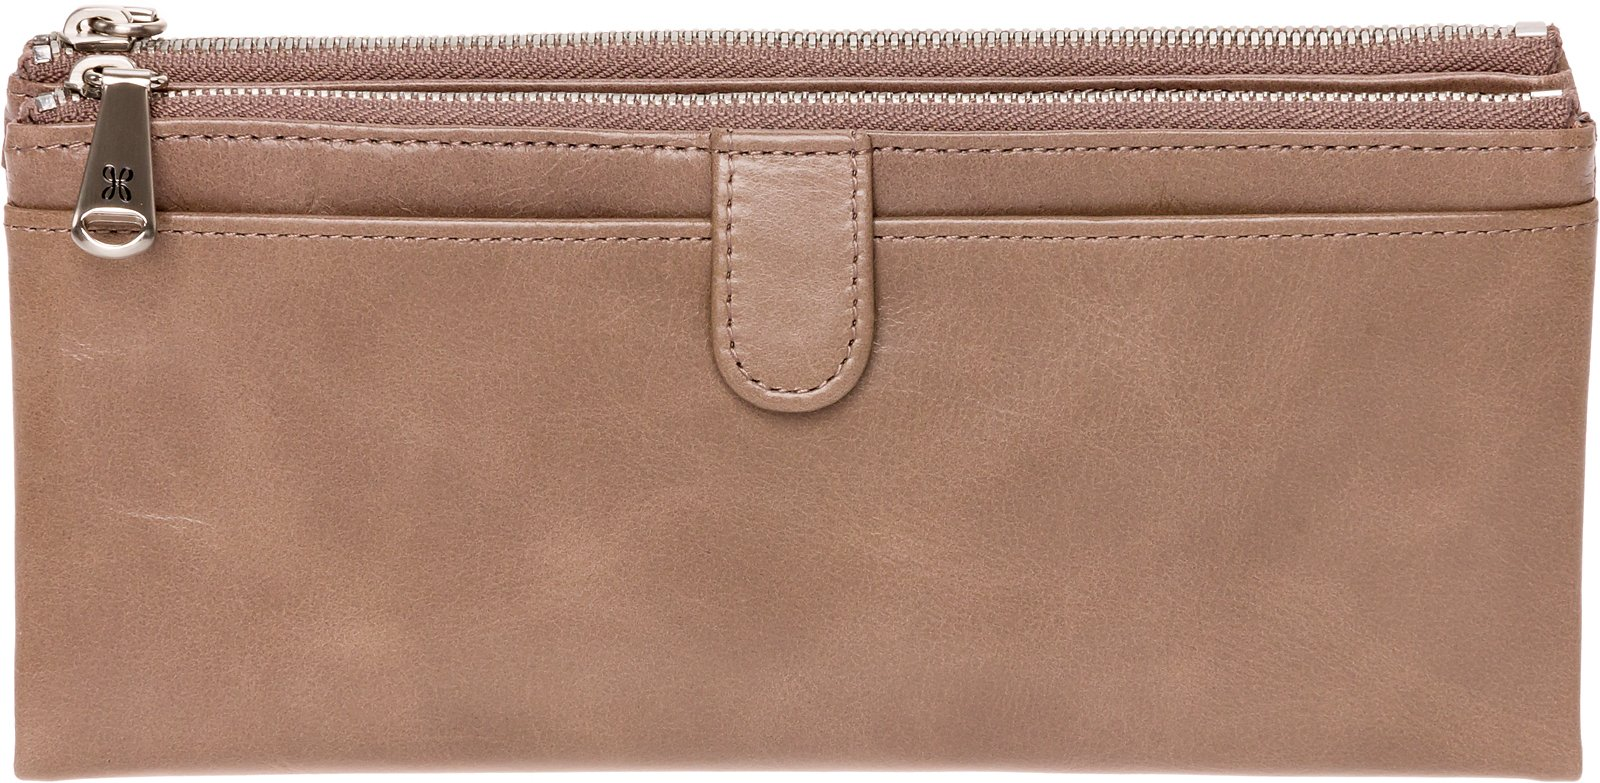 Hobo Womens Leather Vintage Taylor Clutch Wallet (Ash)